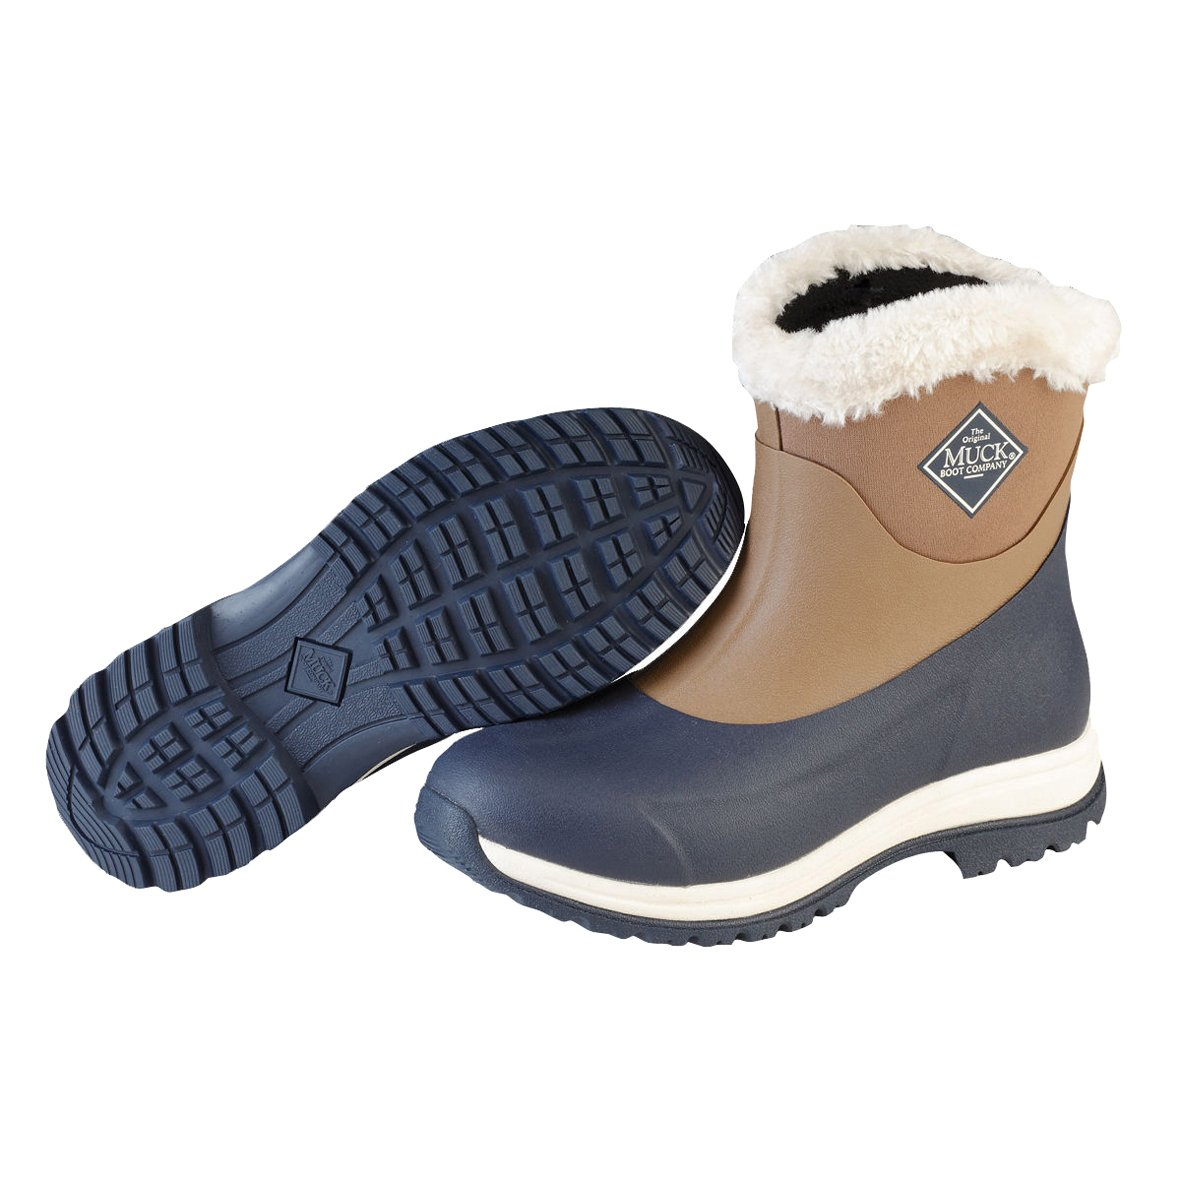 Muck Arctic Après Mid-Height Casual Slip-On Rubber Women's Winter Boots B01FO655I6 9 B(M) US|Otter, Navy/Fog